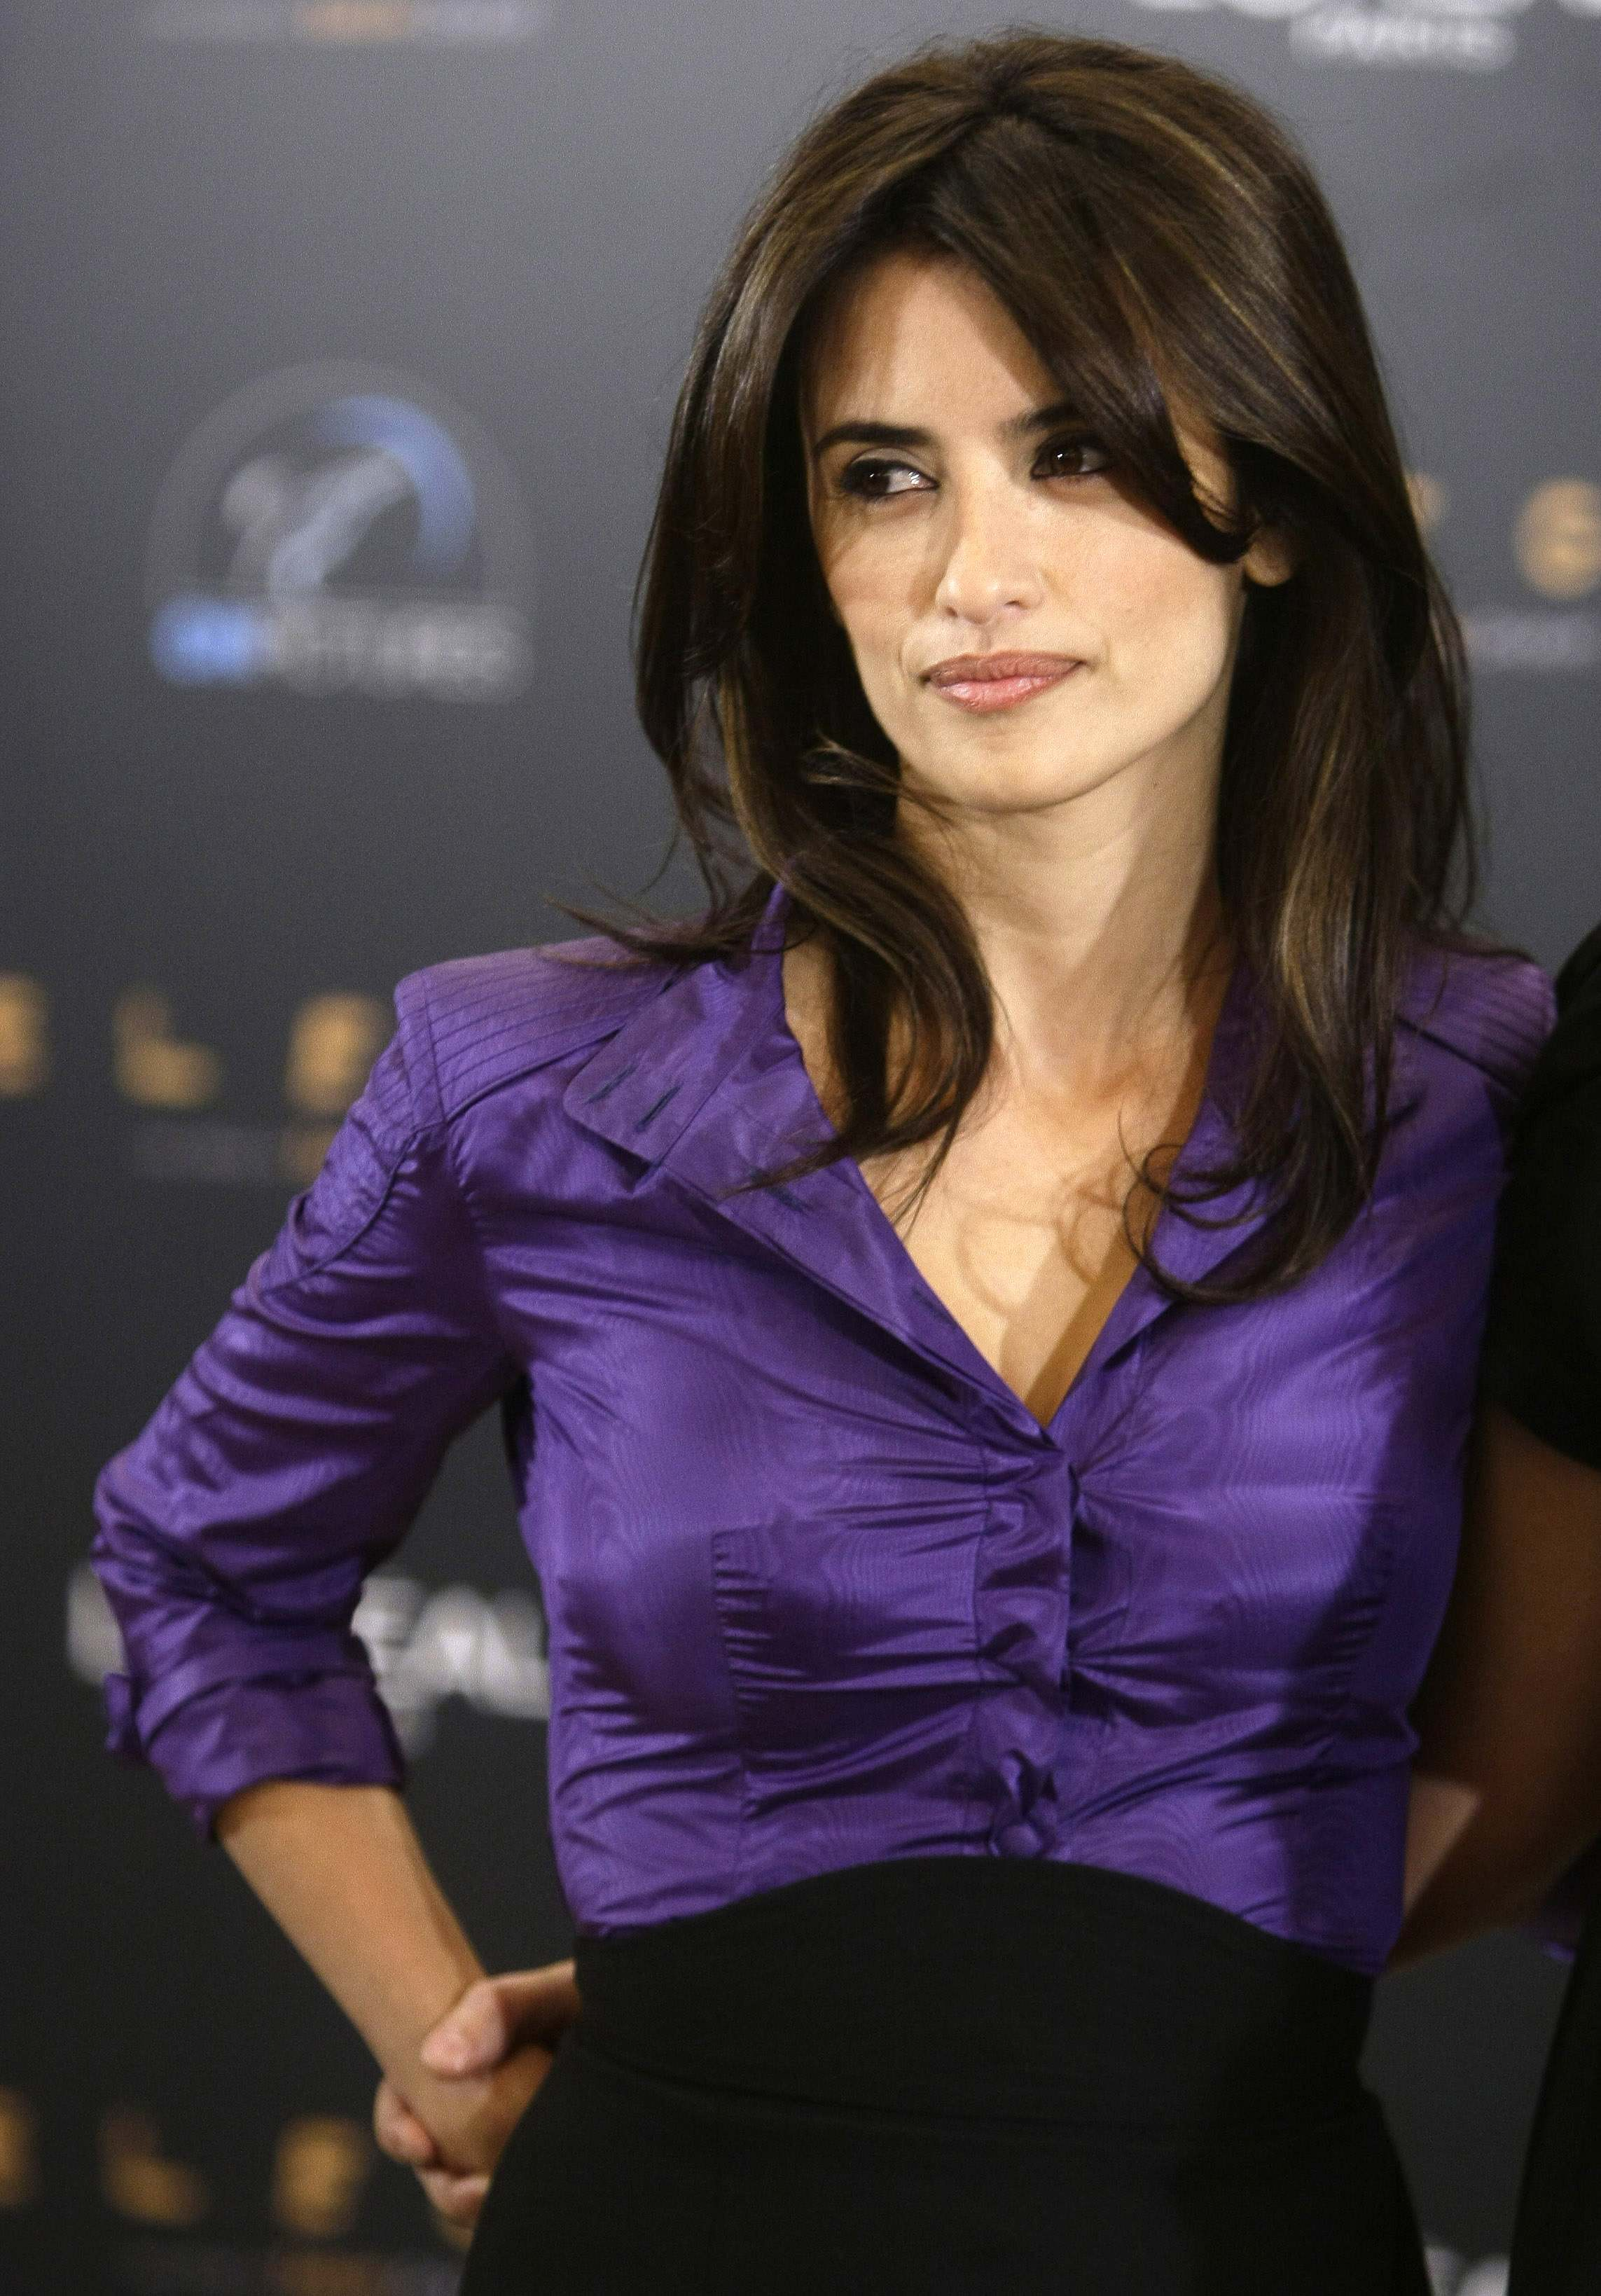 bizzxasex_penelope cruz poses to present her film \'elegy\'